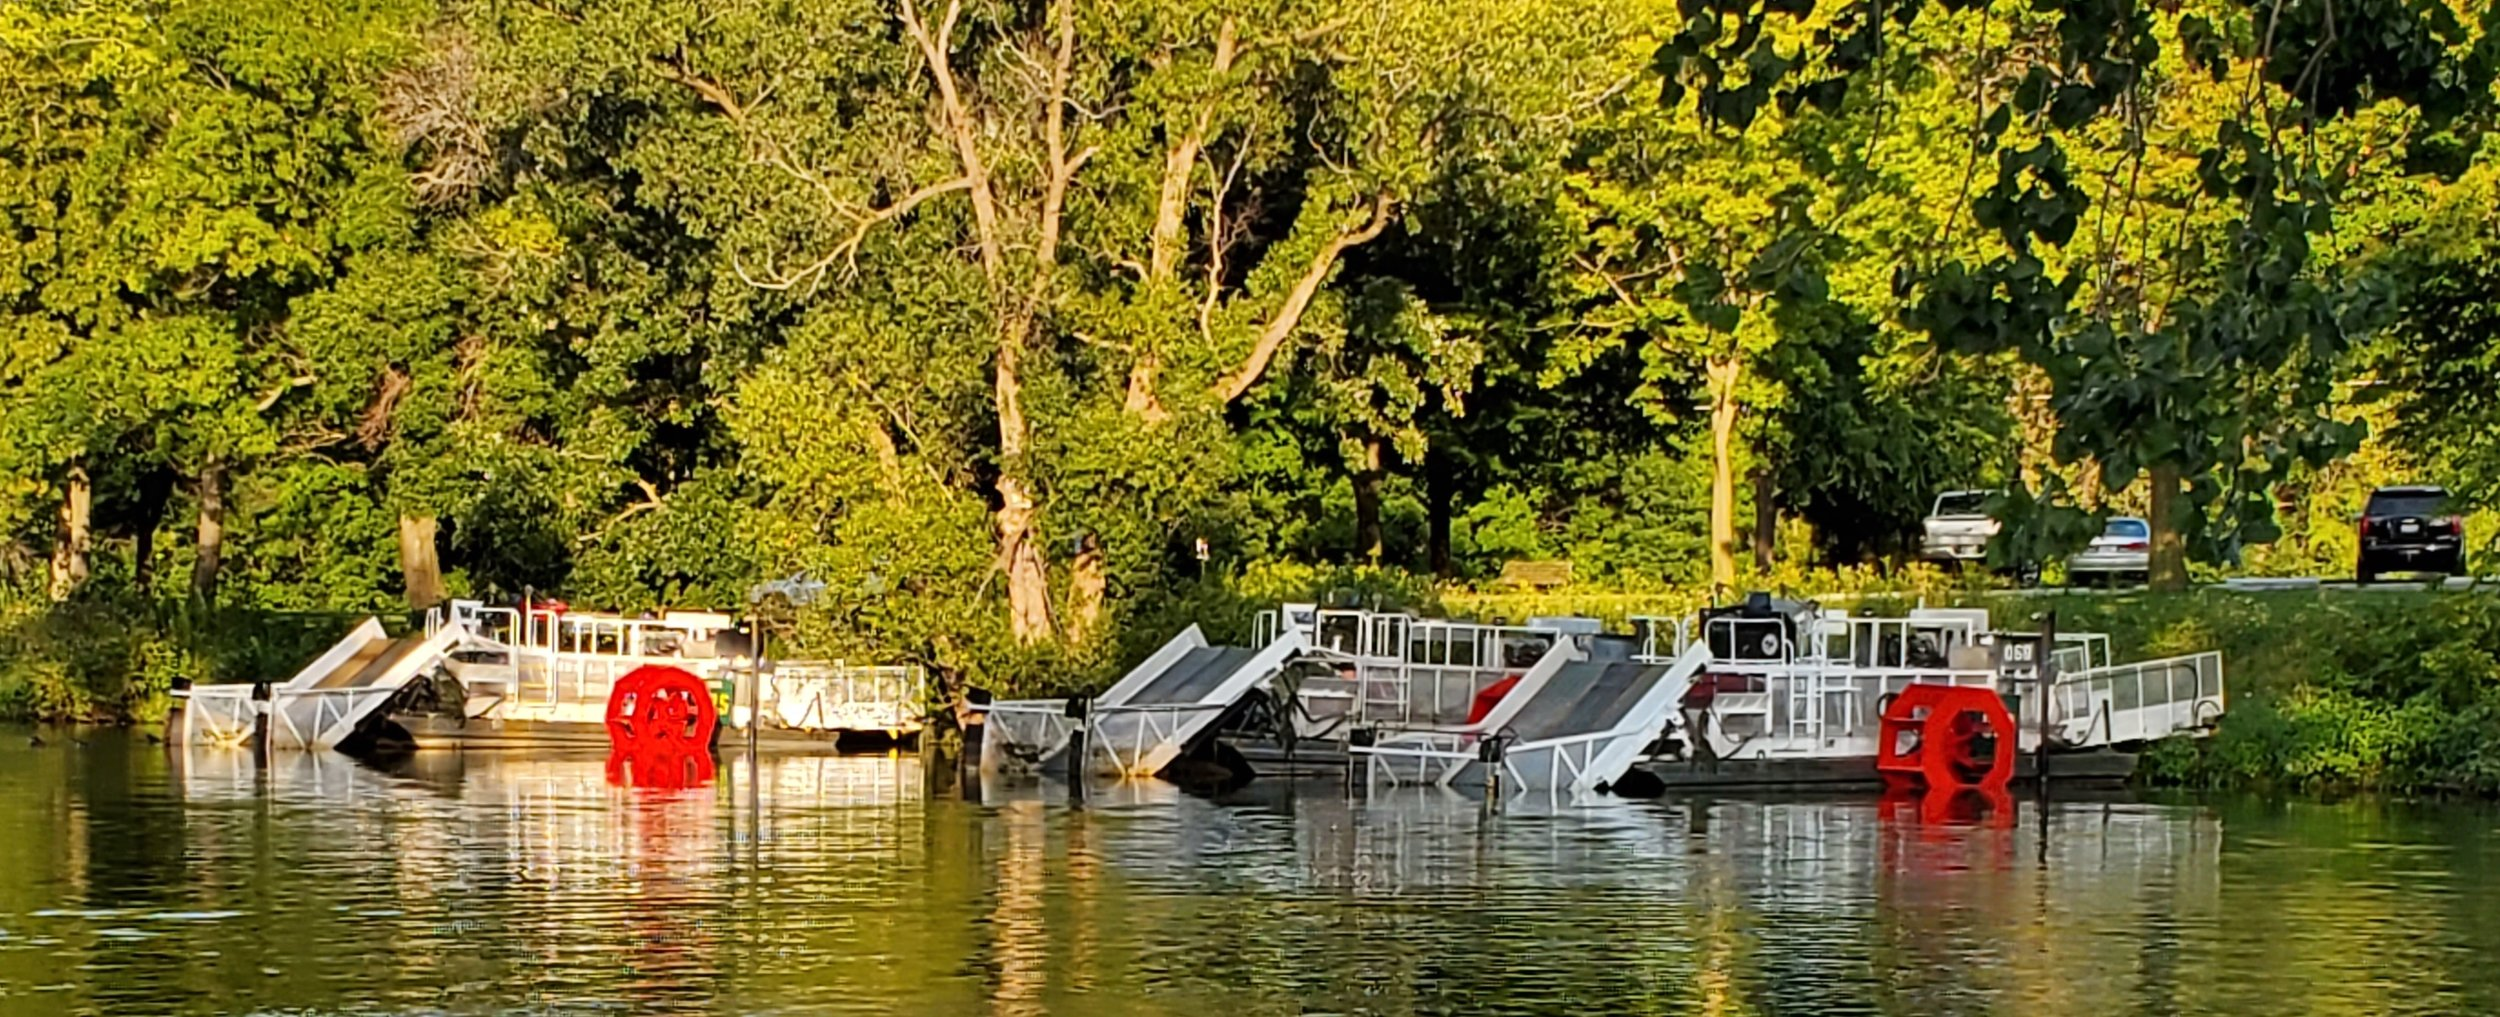 Aquatic plant harvesters parked on Lake Waubesa